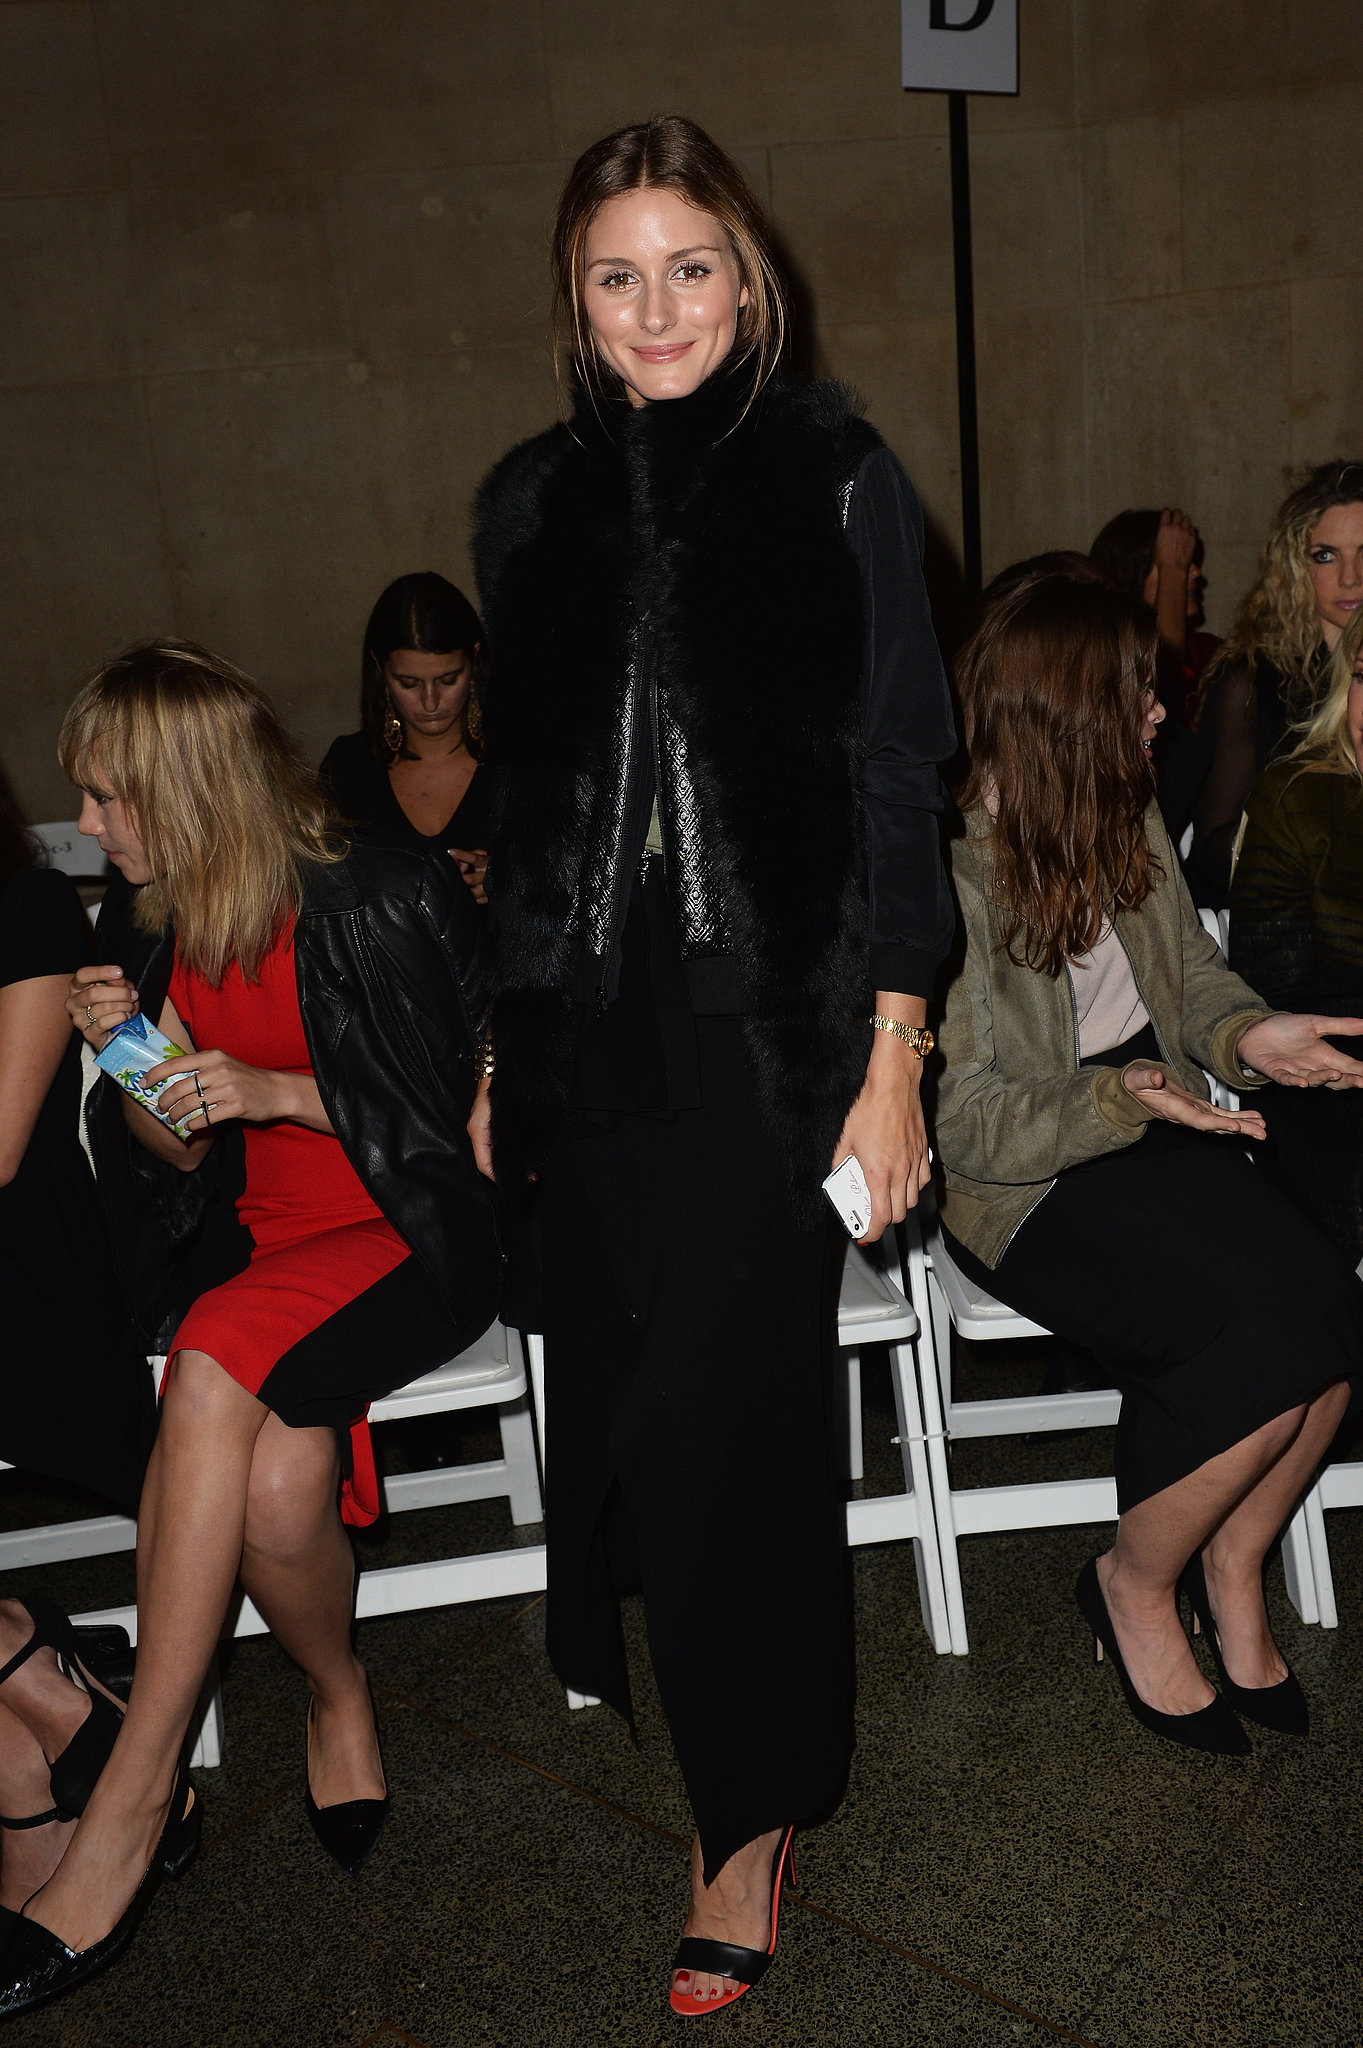 Olivia went for an all-black look in the front row of Jonathan Saunders.